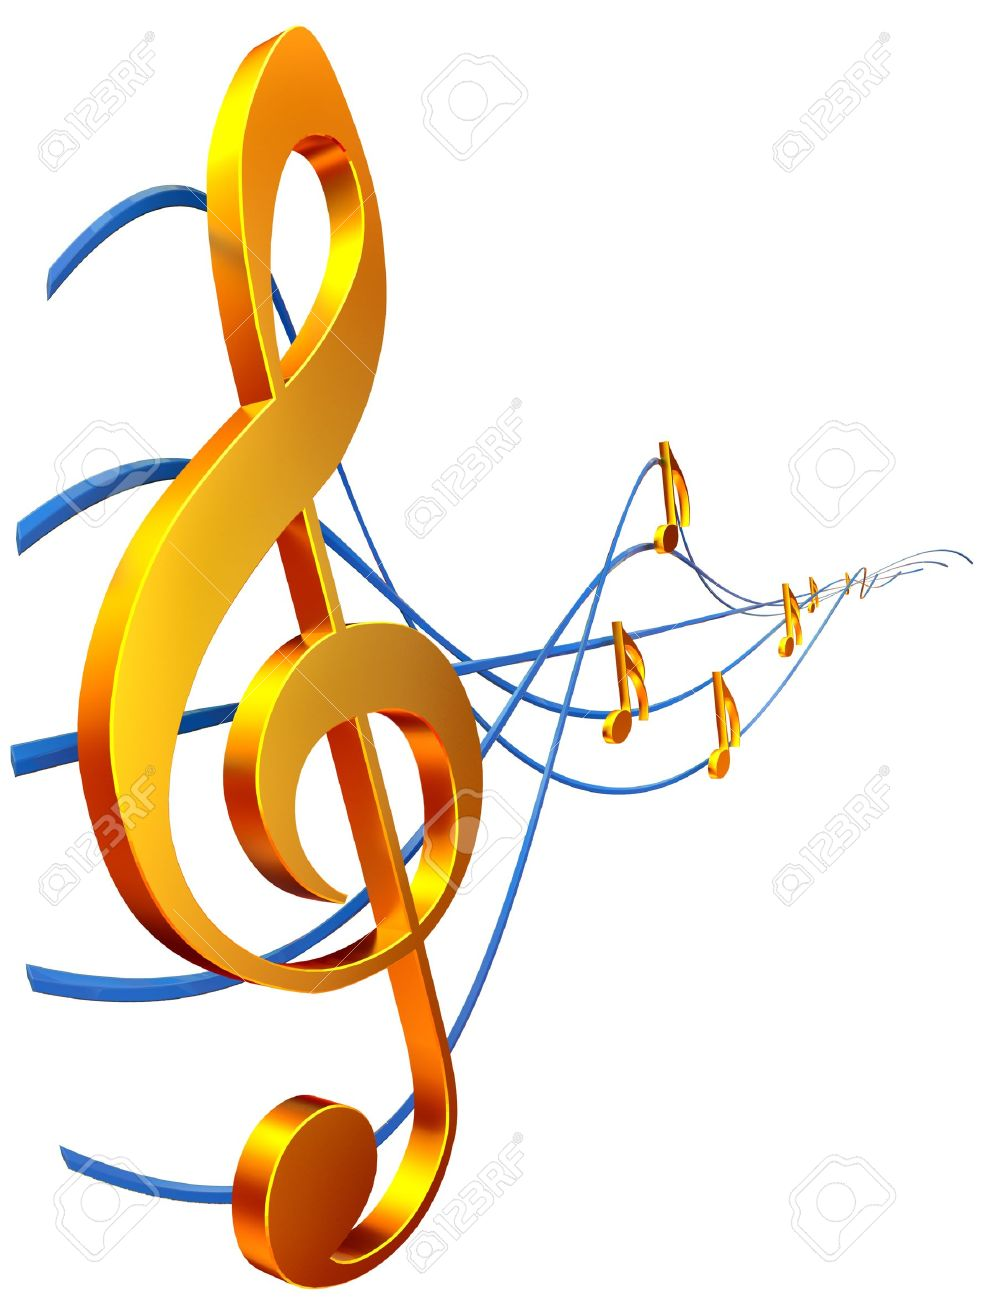 Gold Musical Score With Treble Clef As A Symbol Of Music Creation